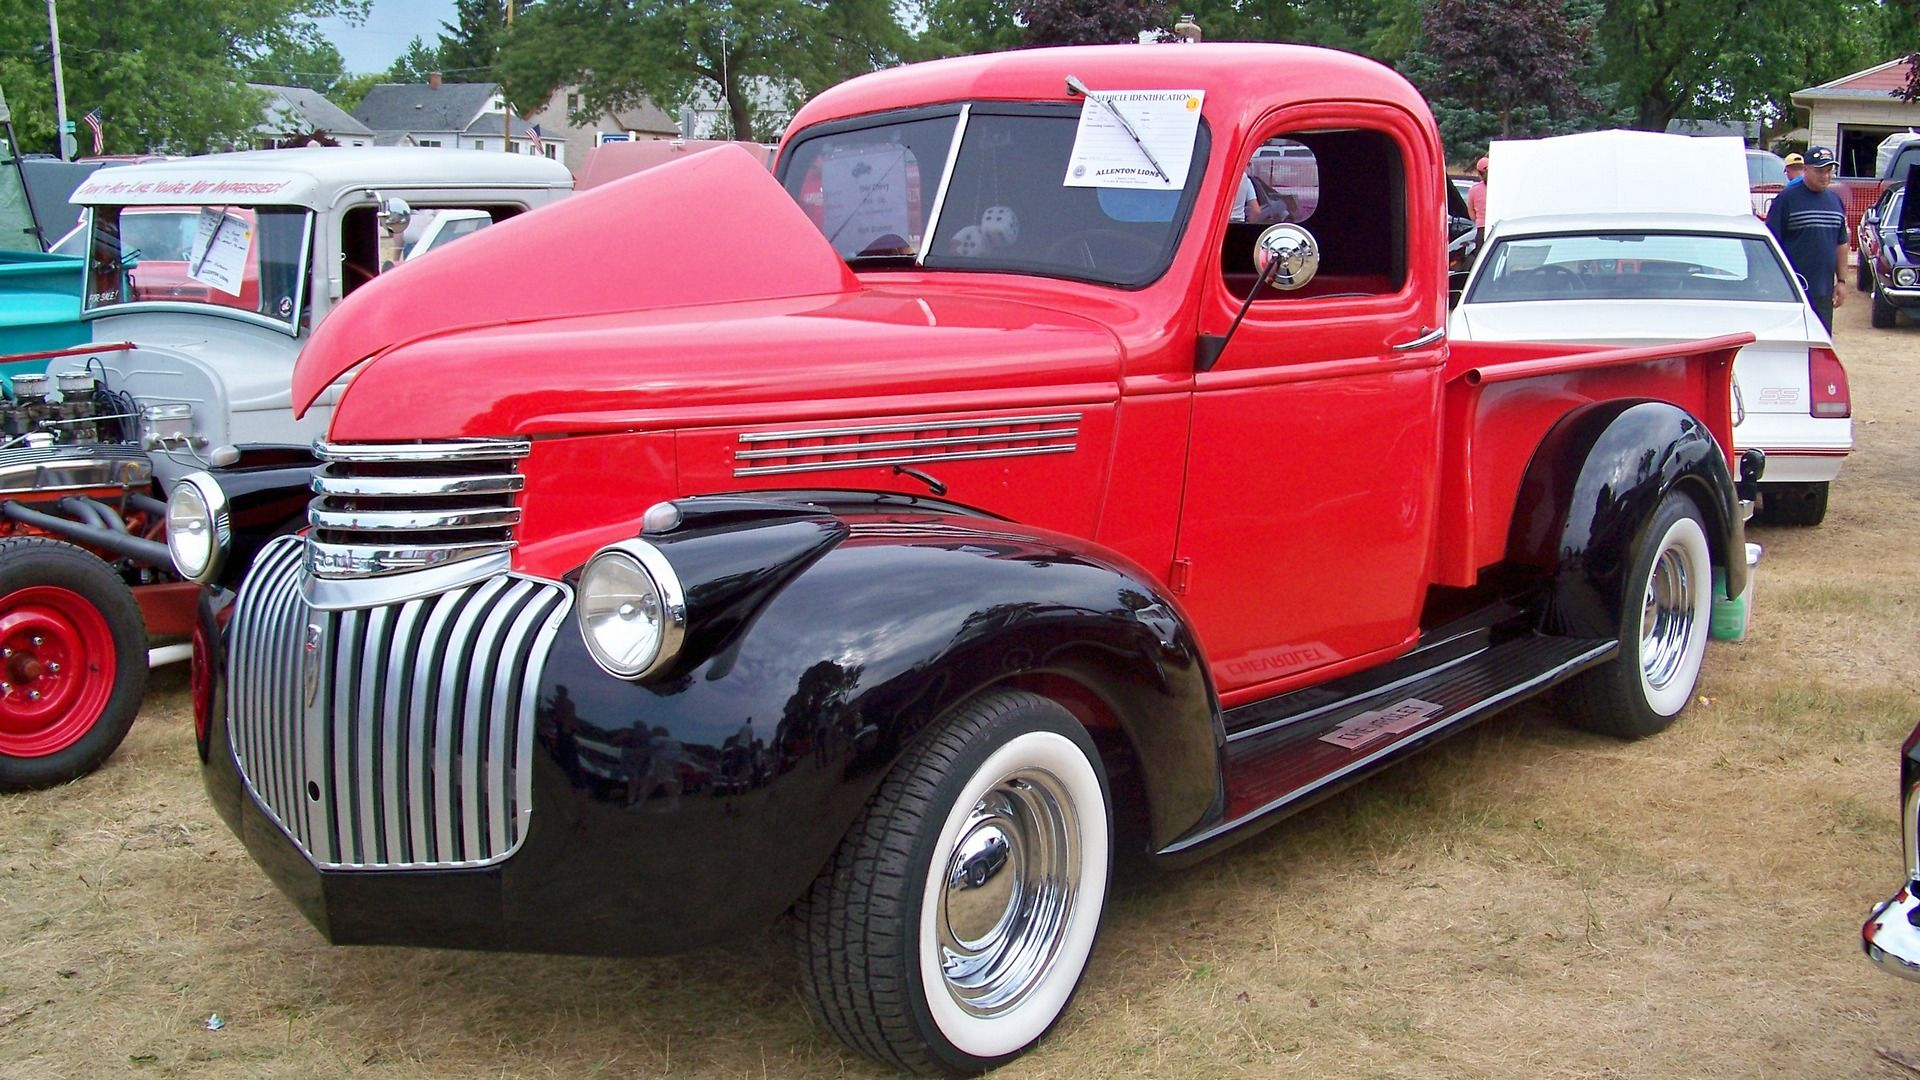 1946 chevy pickup Maintenance/restoration of old/vintage vehicles ...